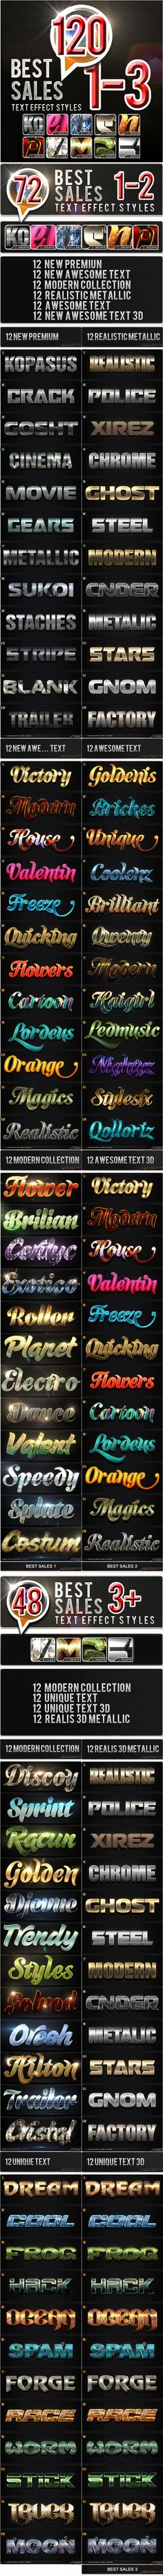 120 Best Sales_1-3 Bundle  120 Best Sales_1-3 Bundle 12 New Premium Metal Styles 12 New Awesome Text Effect Styles12 Modern Collec